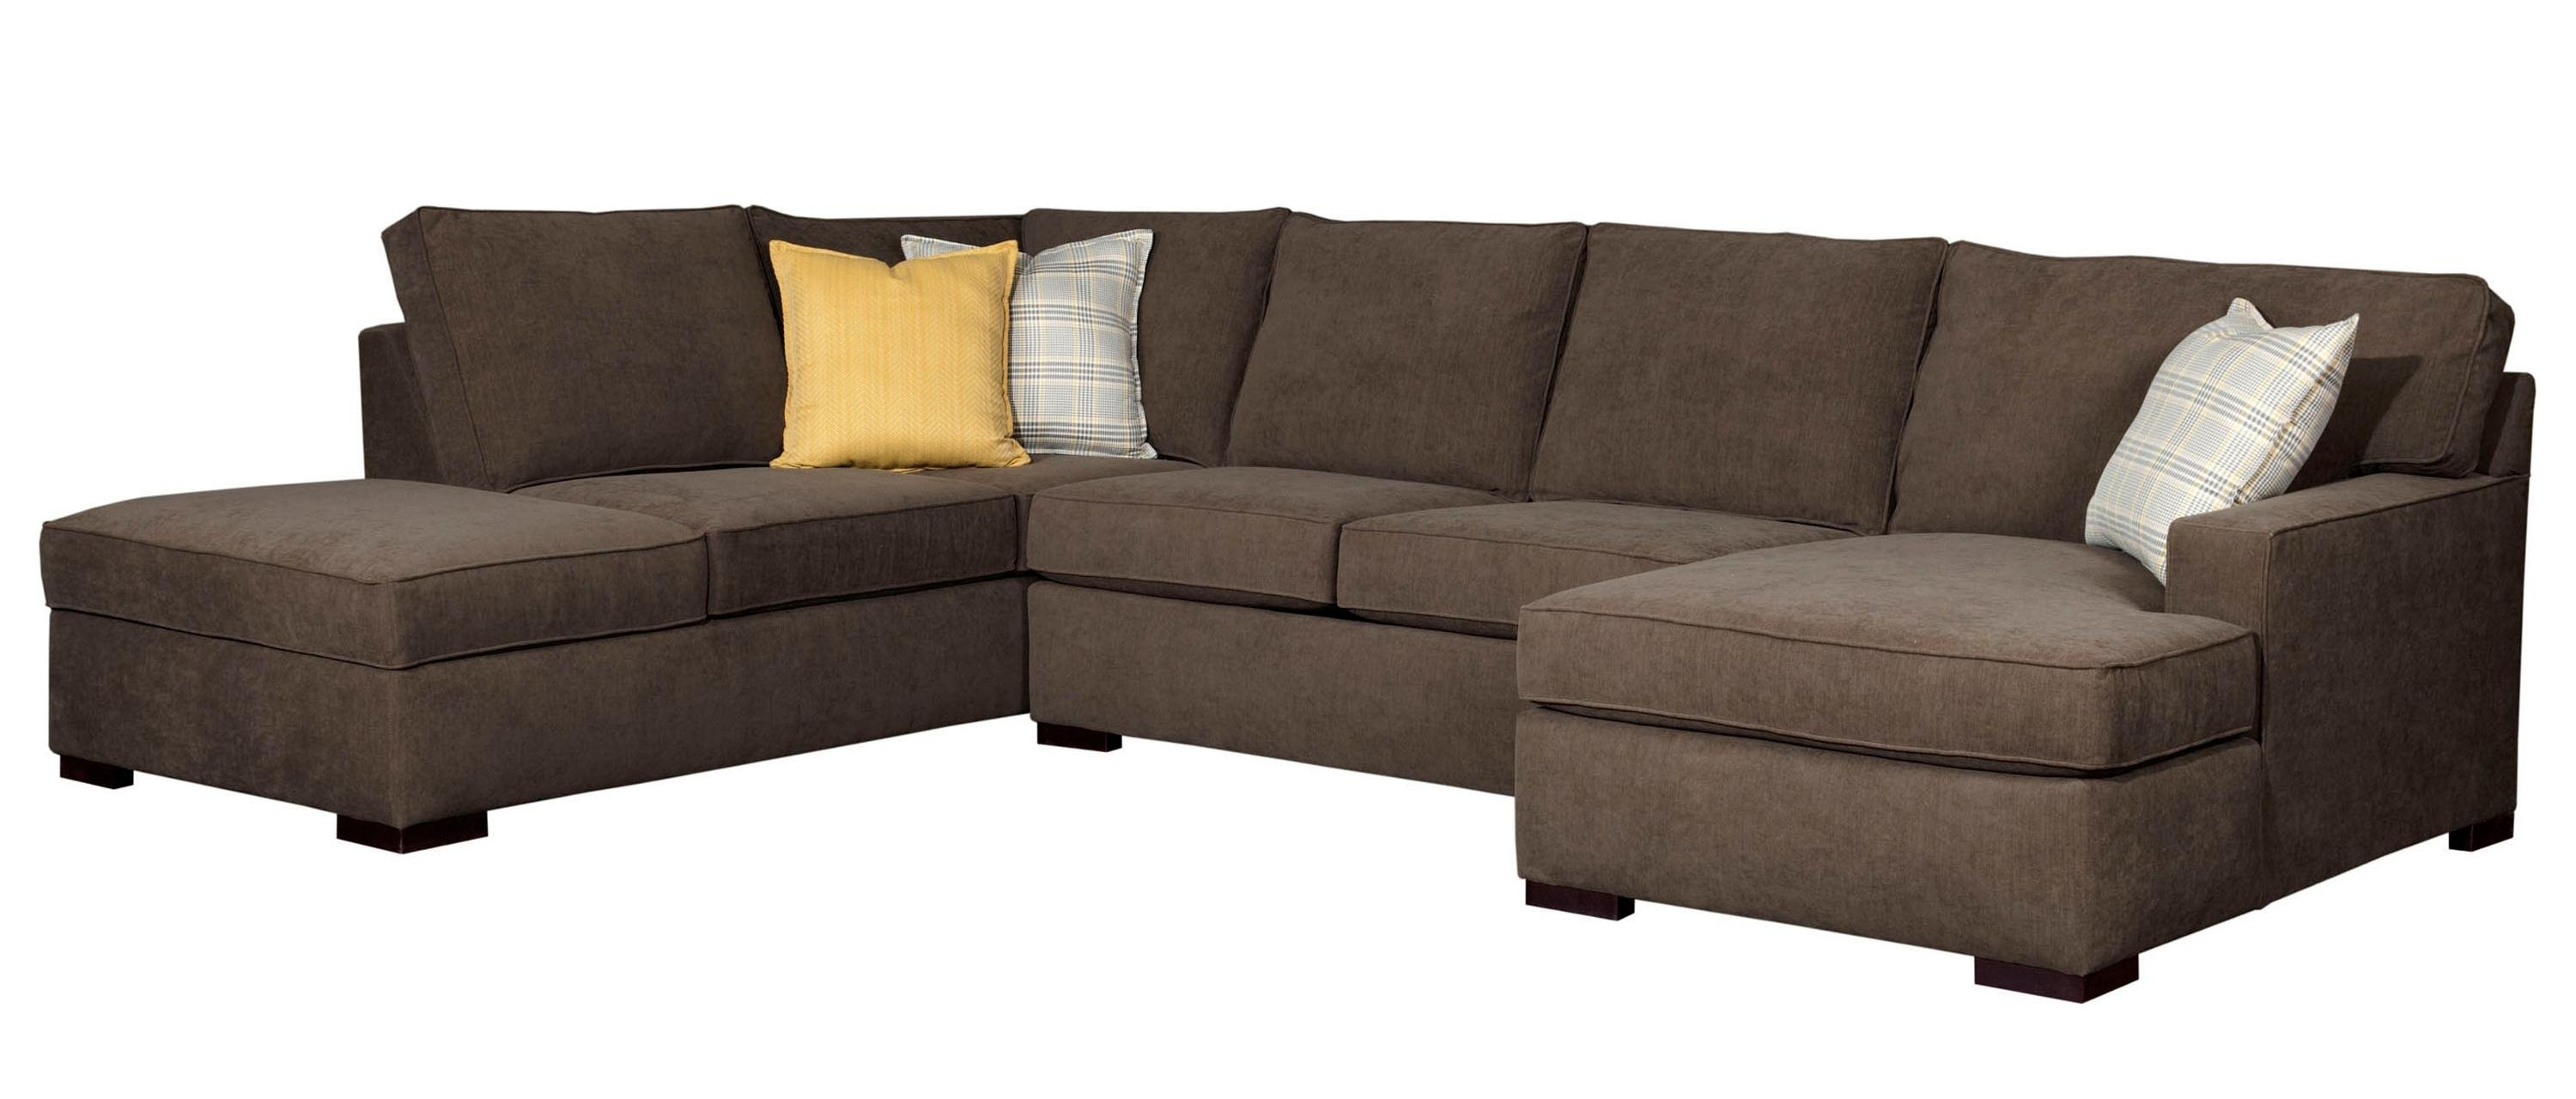 Broyhill Furniture Raphael Contemporary Sectional Sofa With Laf With Regard To Well Liked Tuscaloosa Sectional Sofas (Gallery 11 of 20)